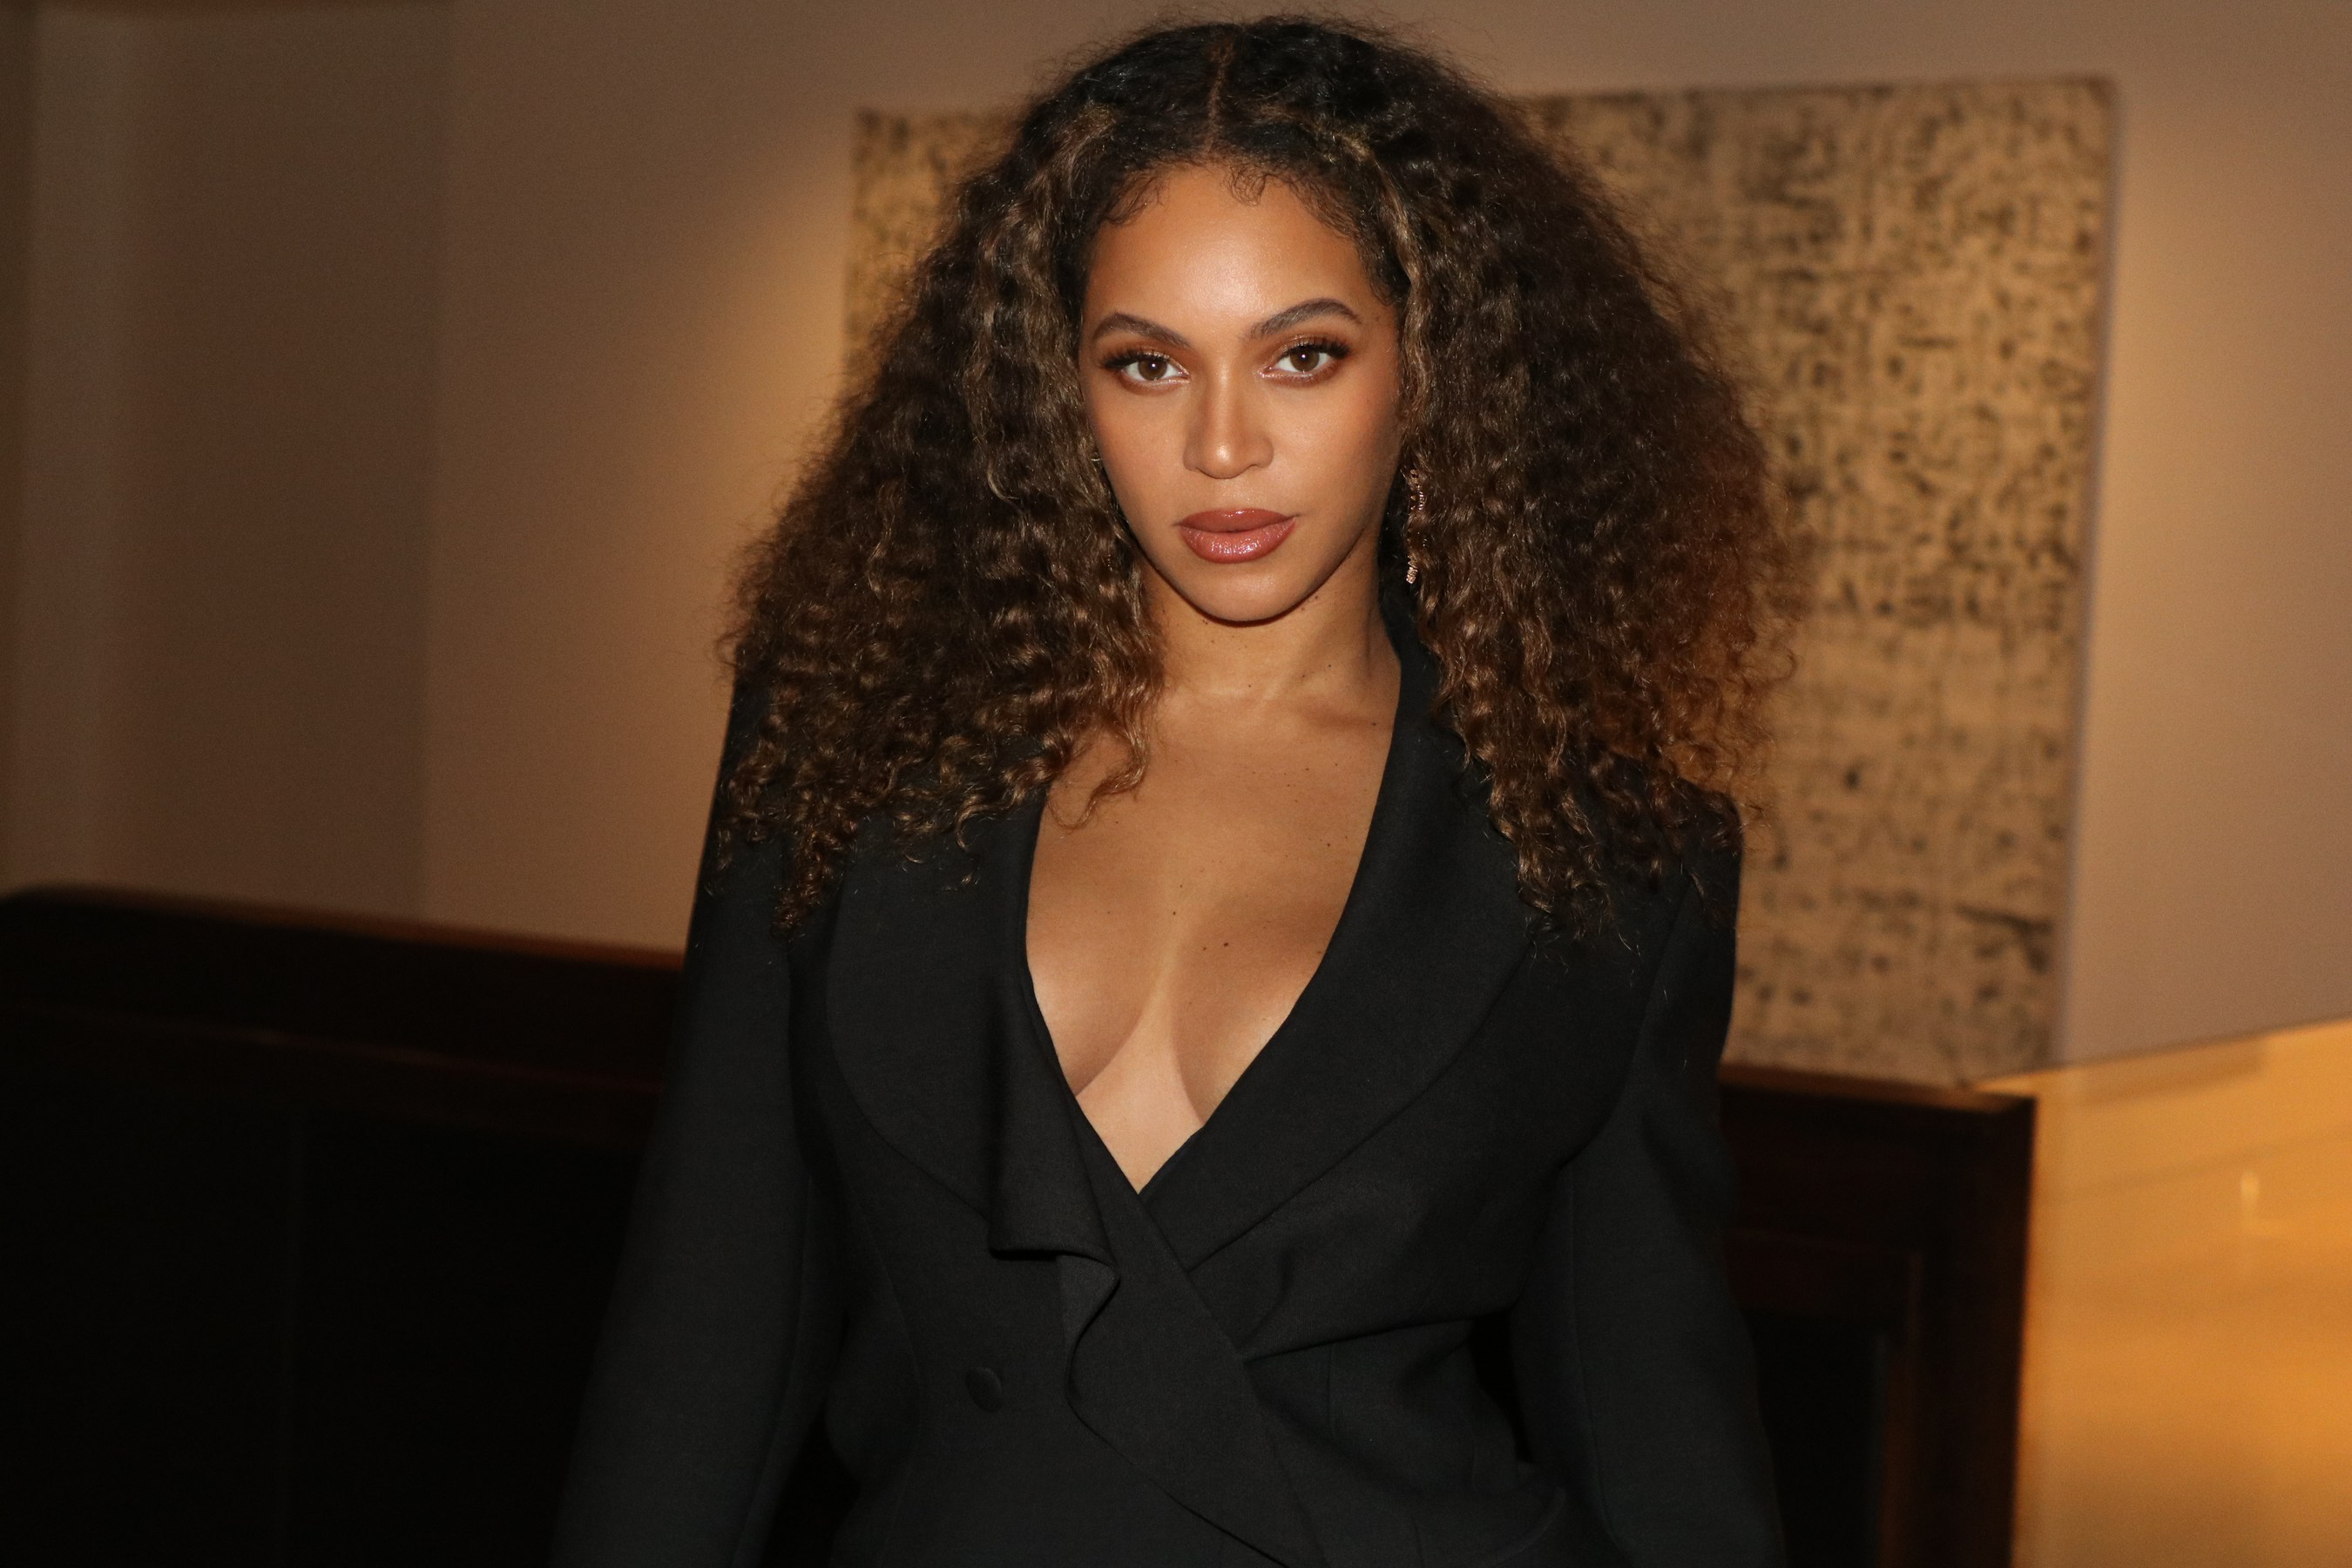 Beyonce Shares Rare Family Photos on Instagram